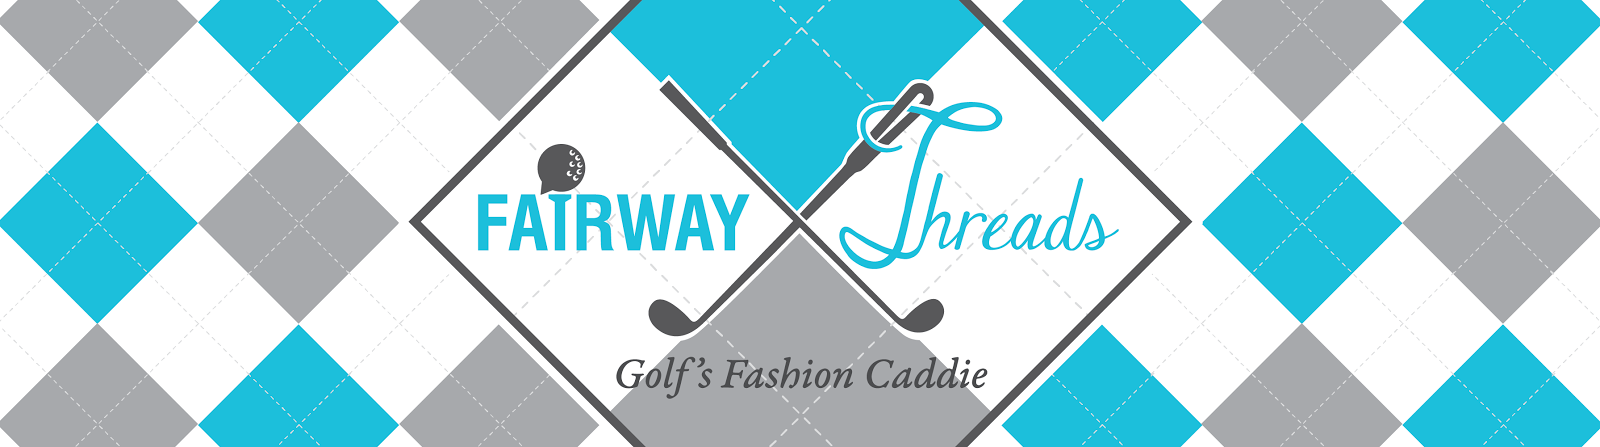 Fairway Threads